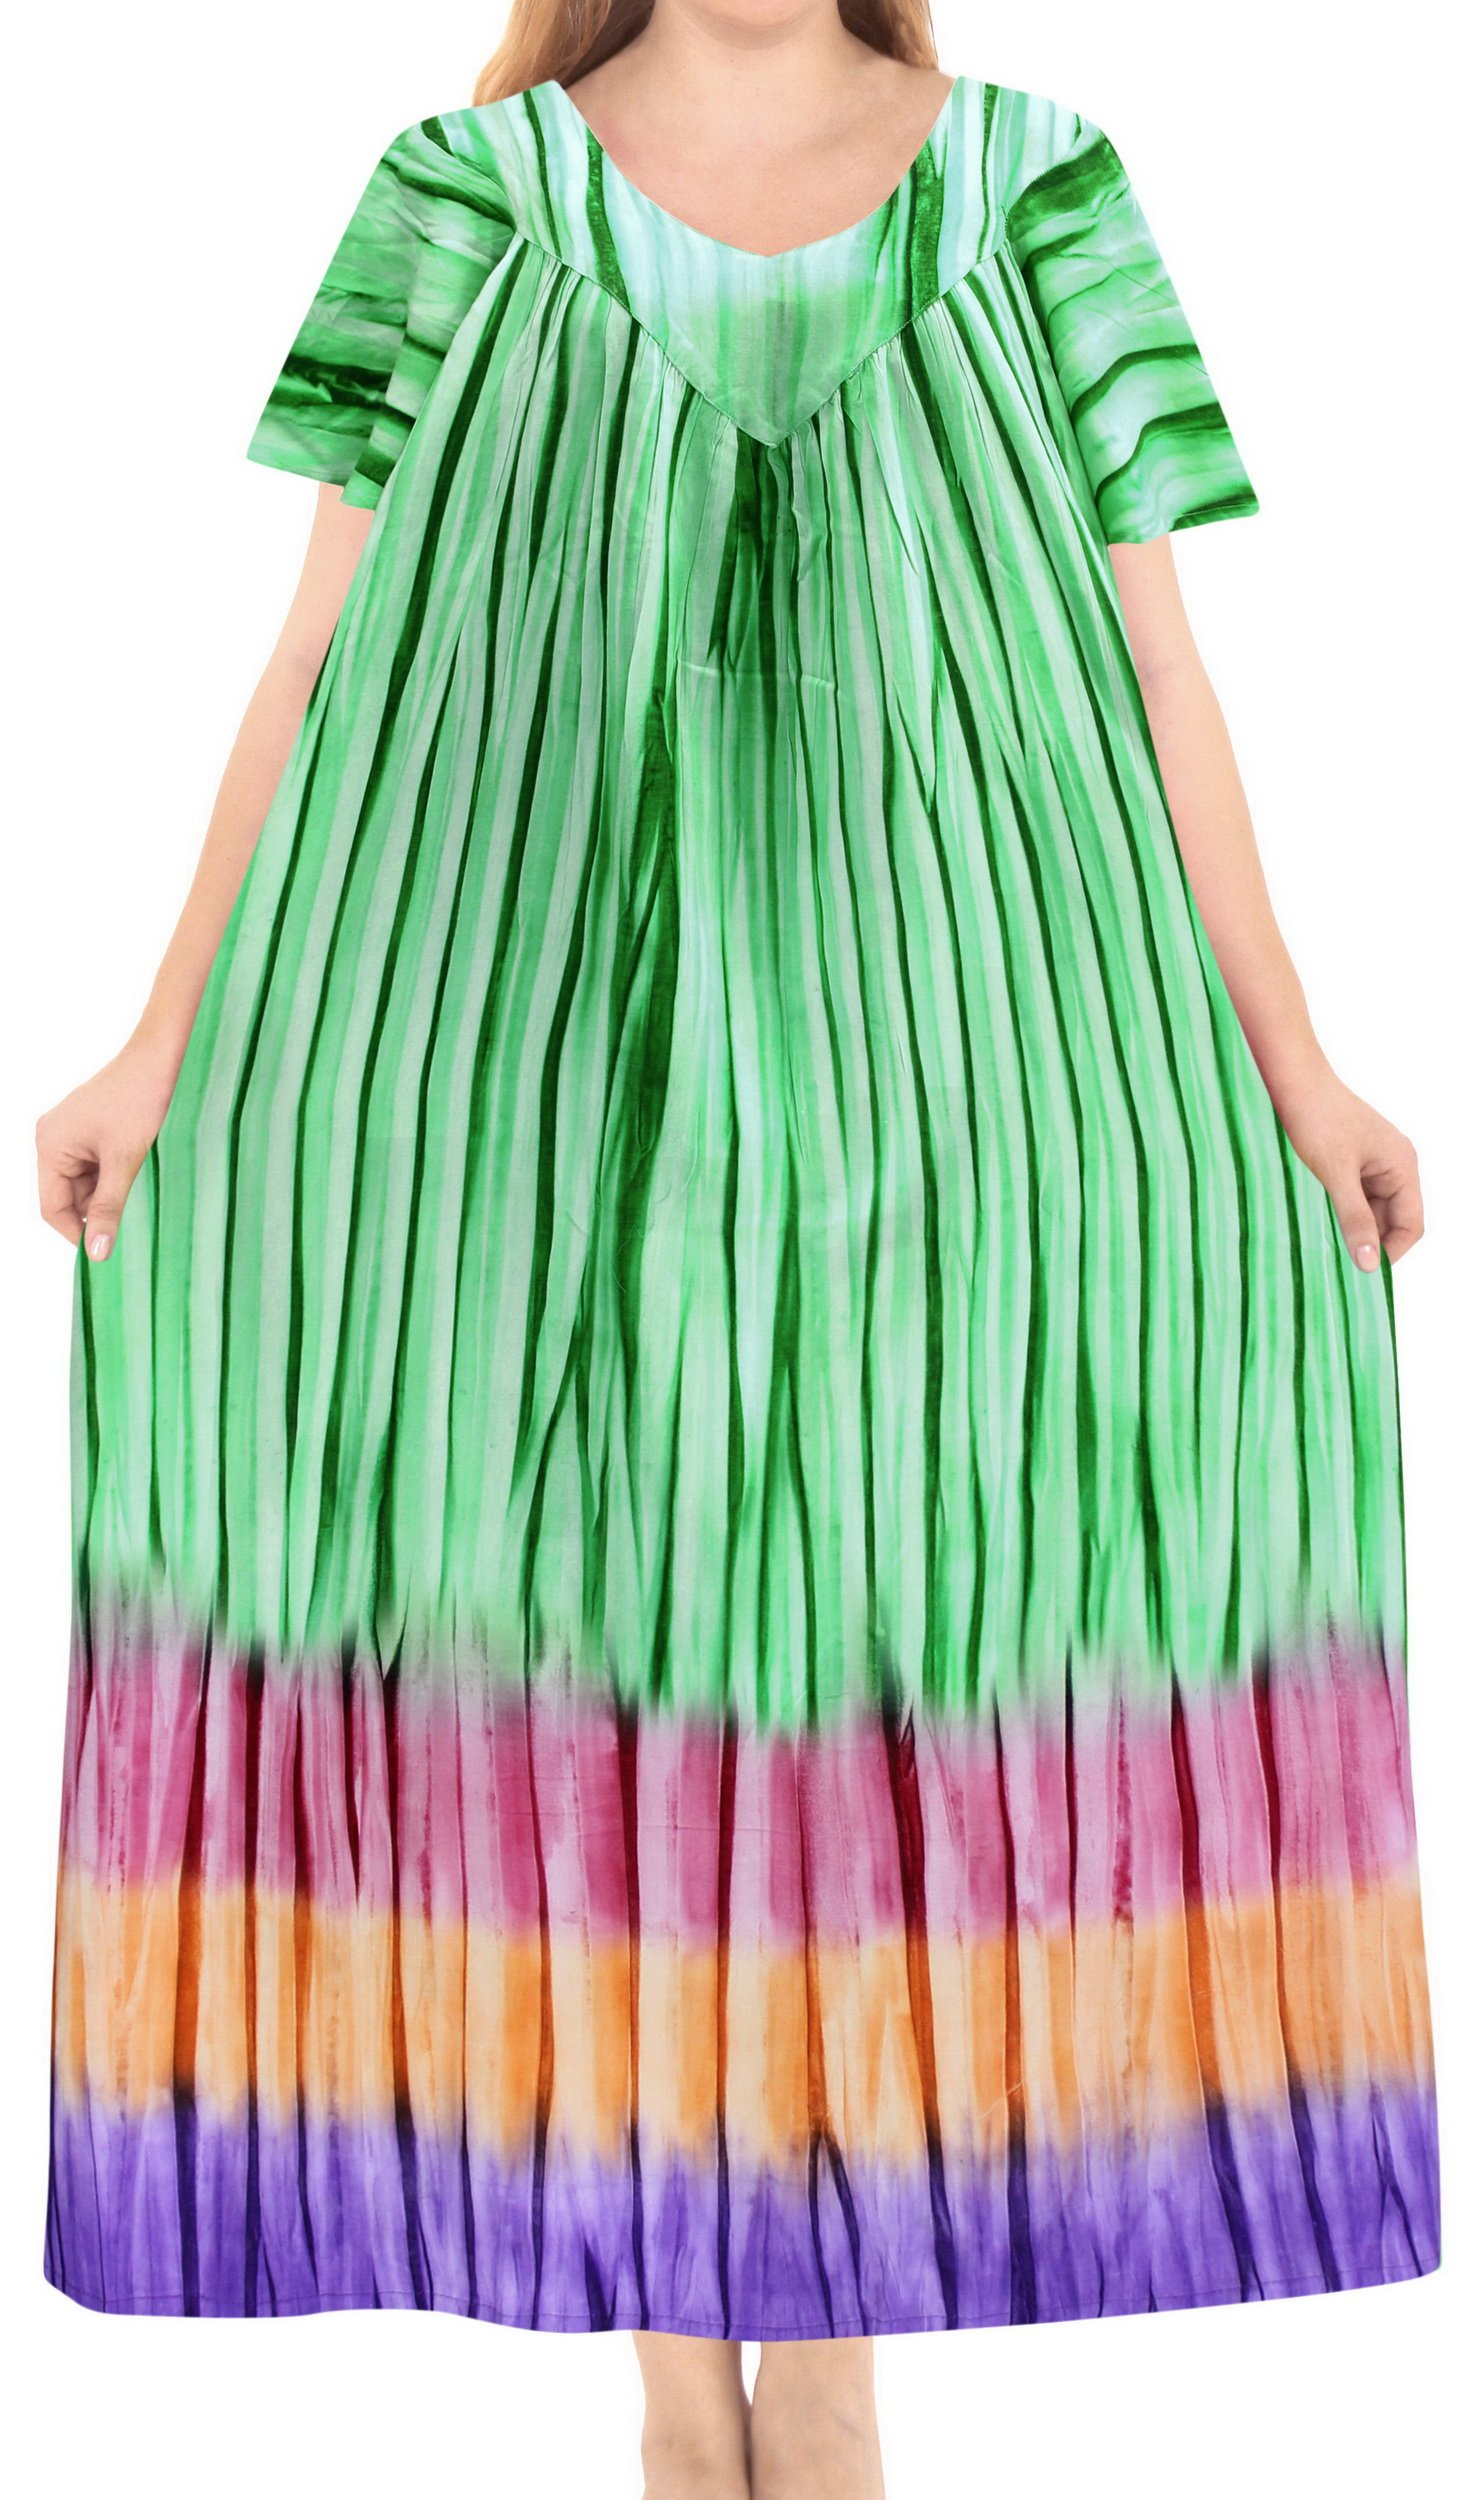 LA LEELA Cotton Tie Dye Maxi Wedding Designer Dresses Green 86 One Size